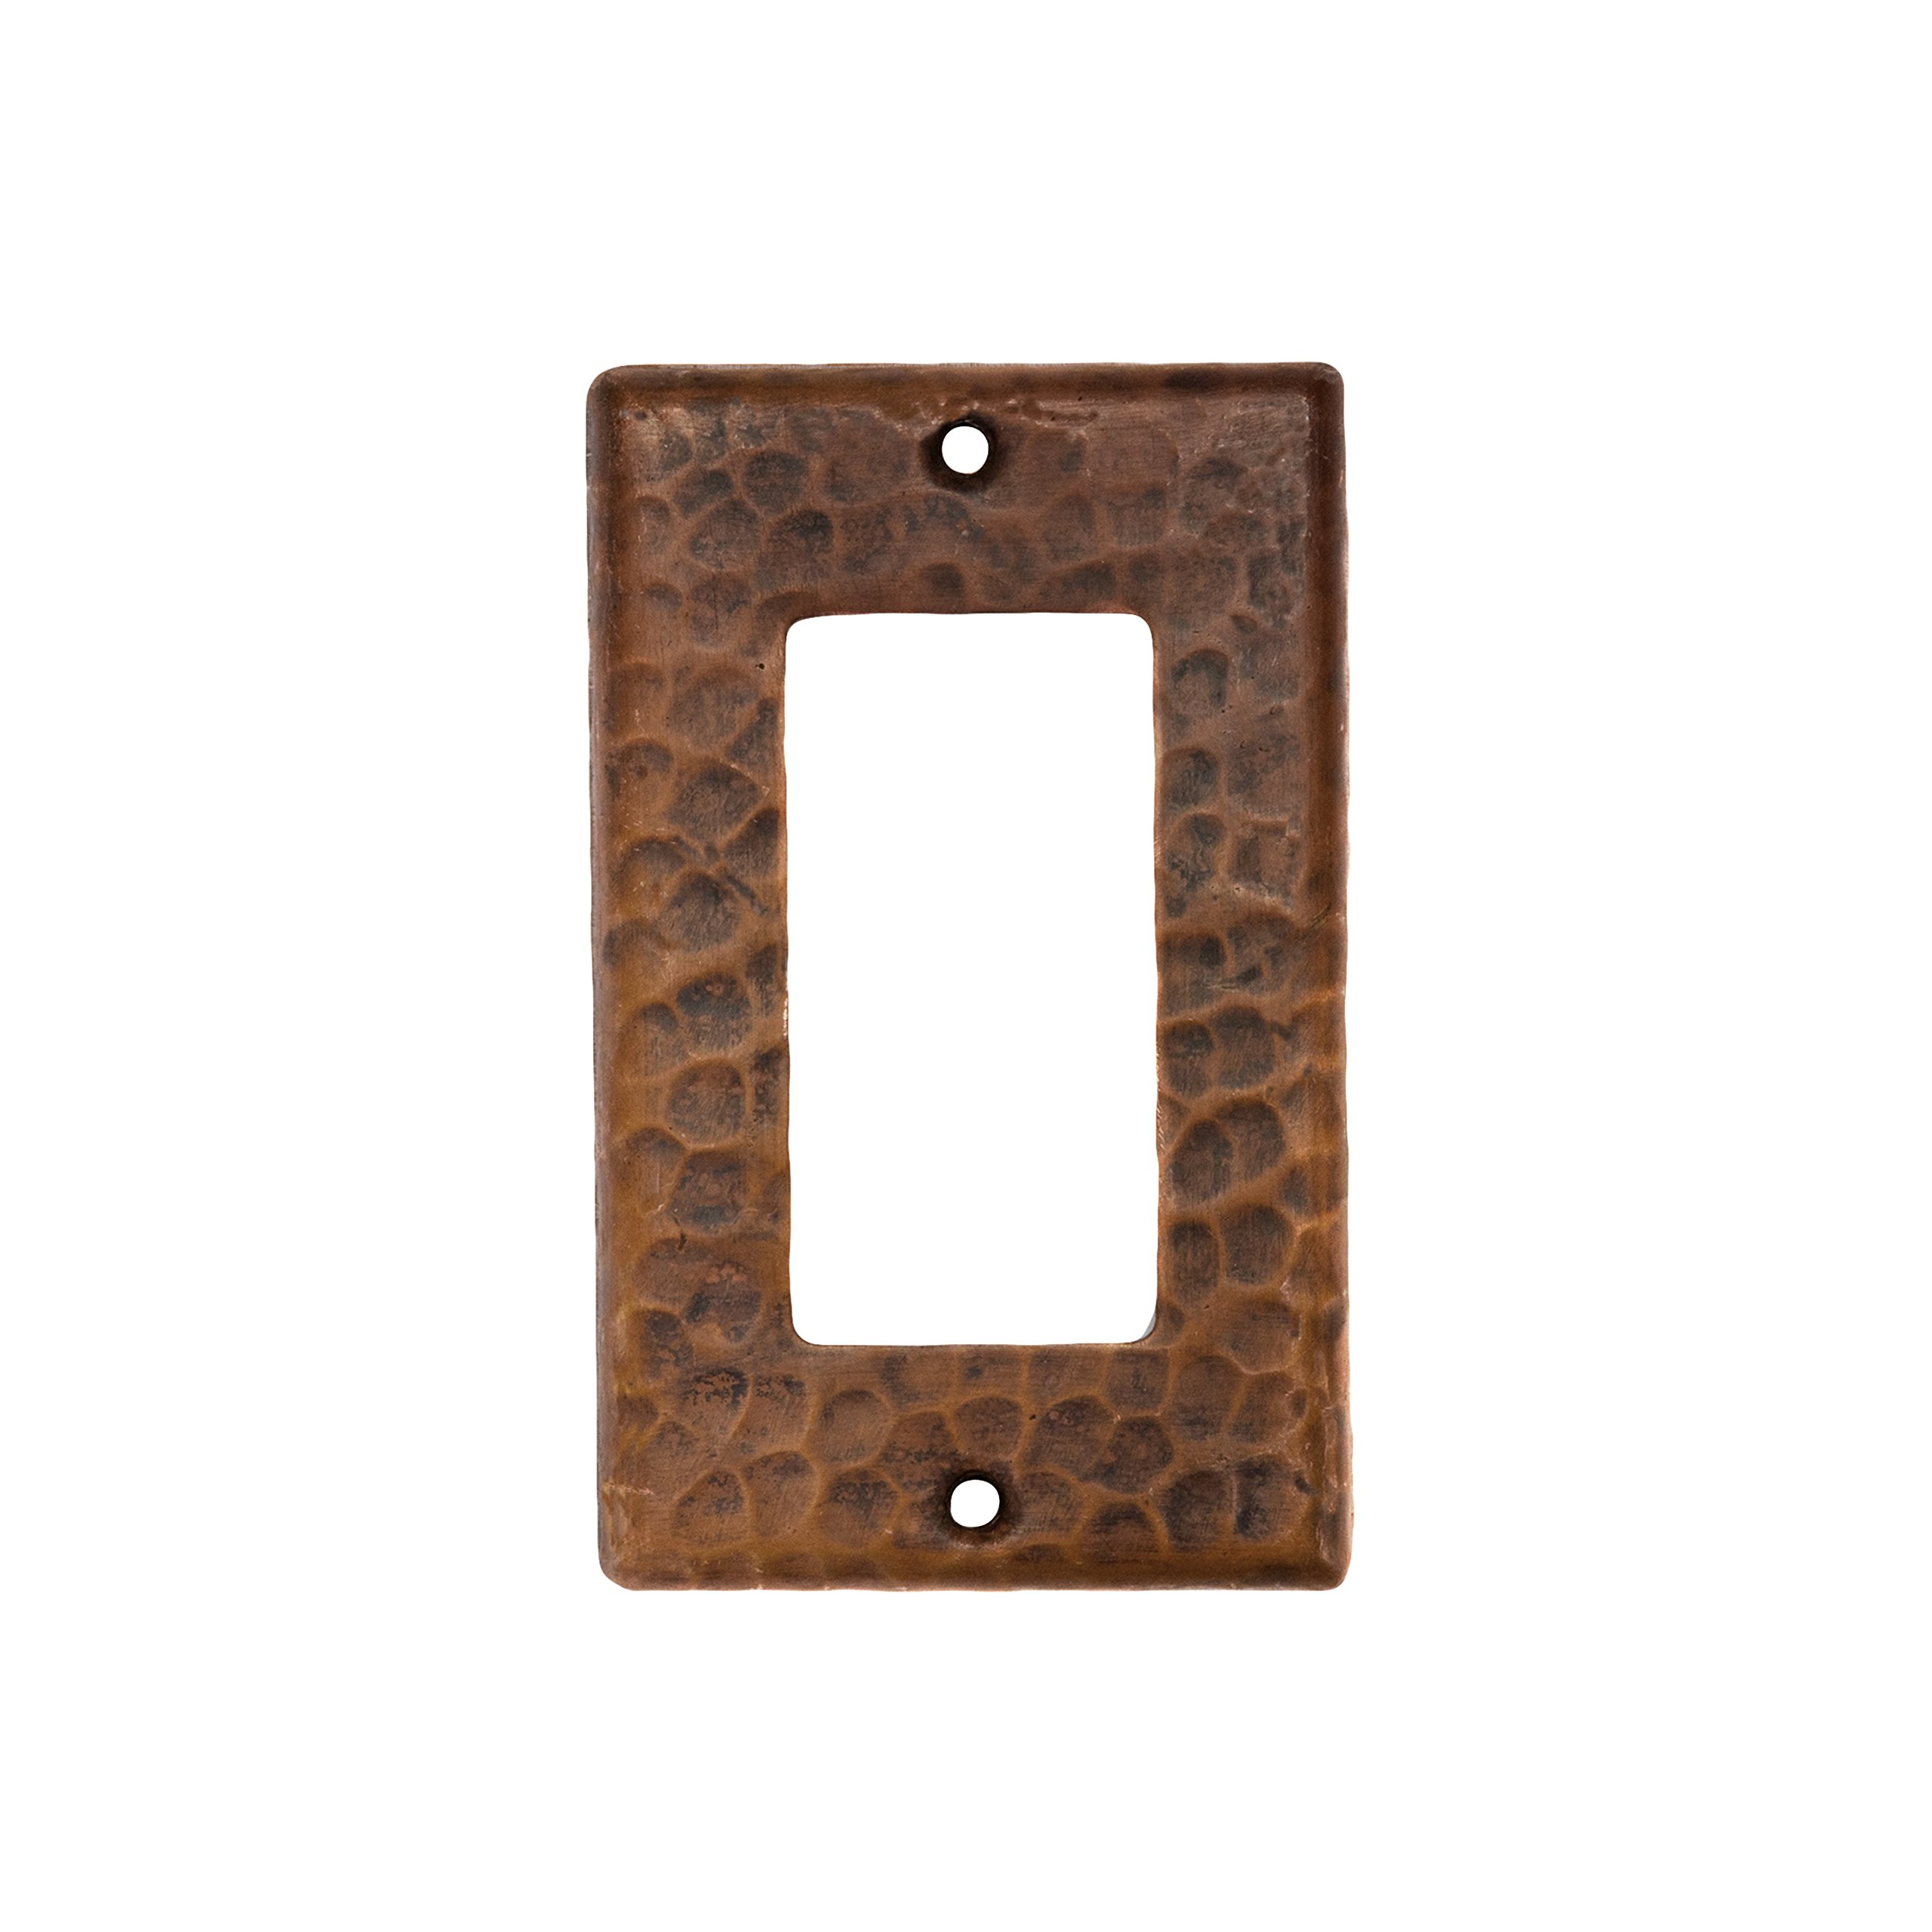 Premier Copper Products SR1 Copper Single Ground Fault/Rocker GFI Switch Plate Cover, Oil Rubbed Bronze